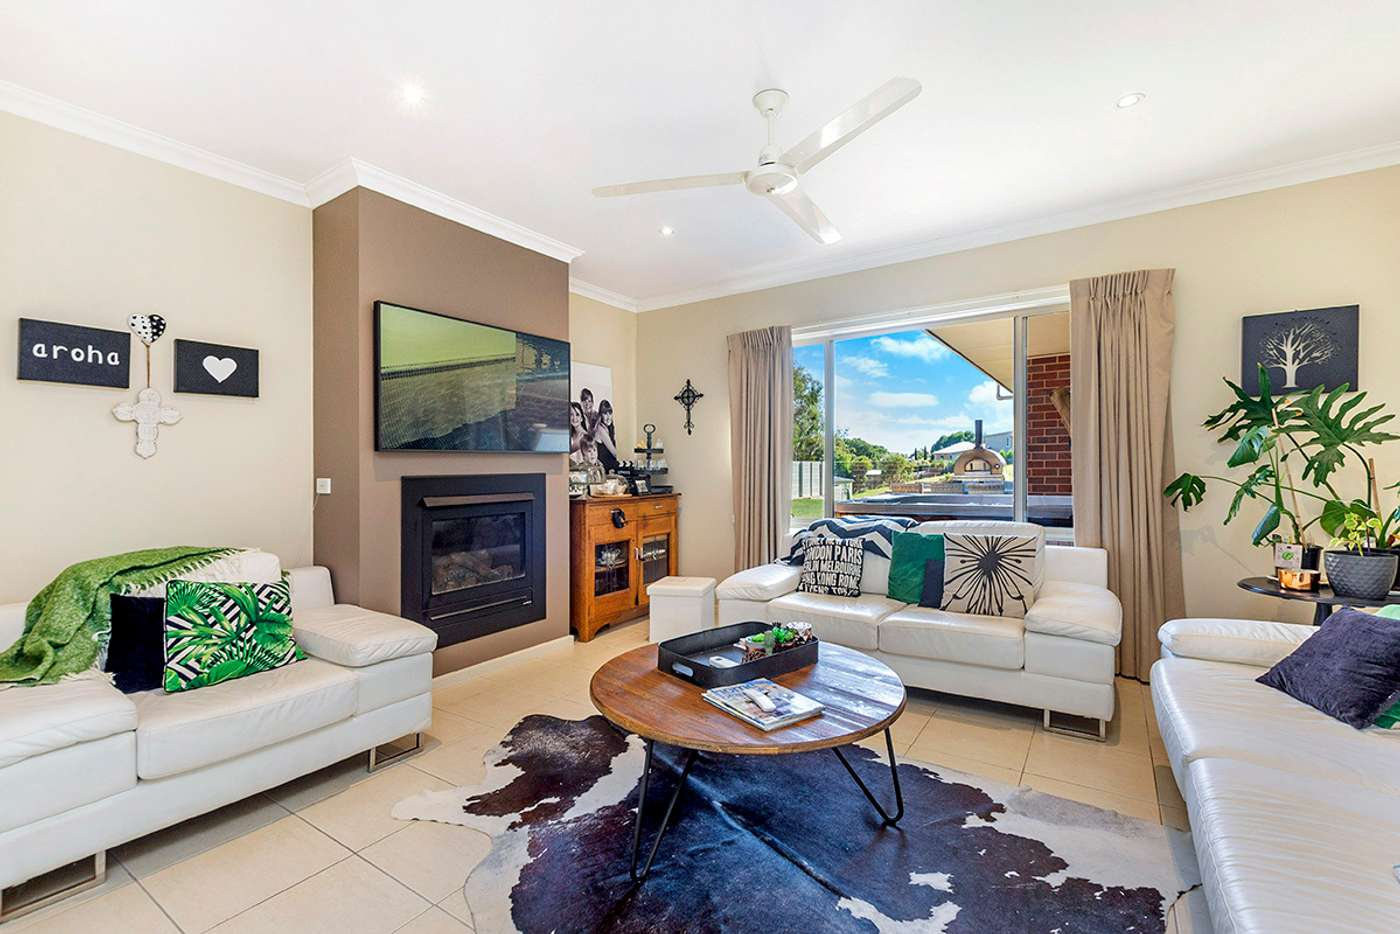 Fifth view of Homely house listing, 30 Trangmar Street, Portland VIC 3305